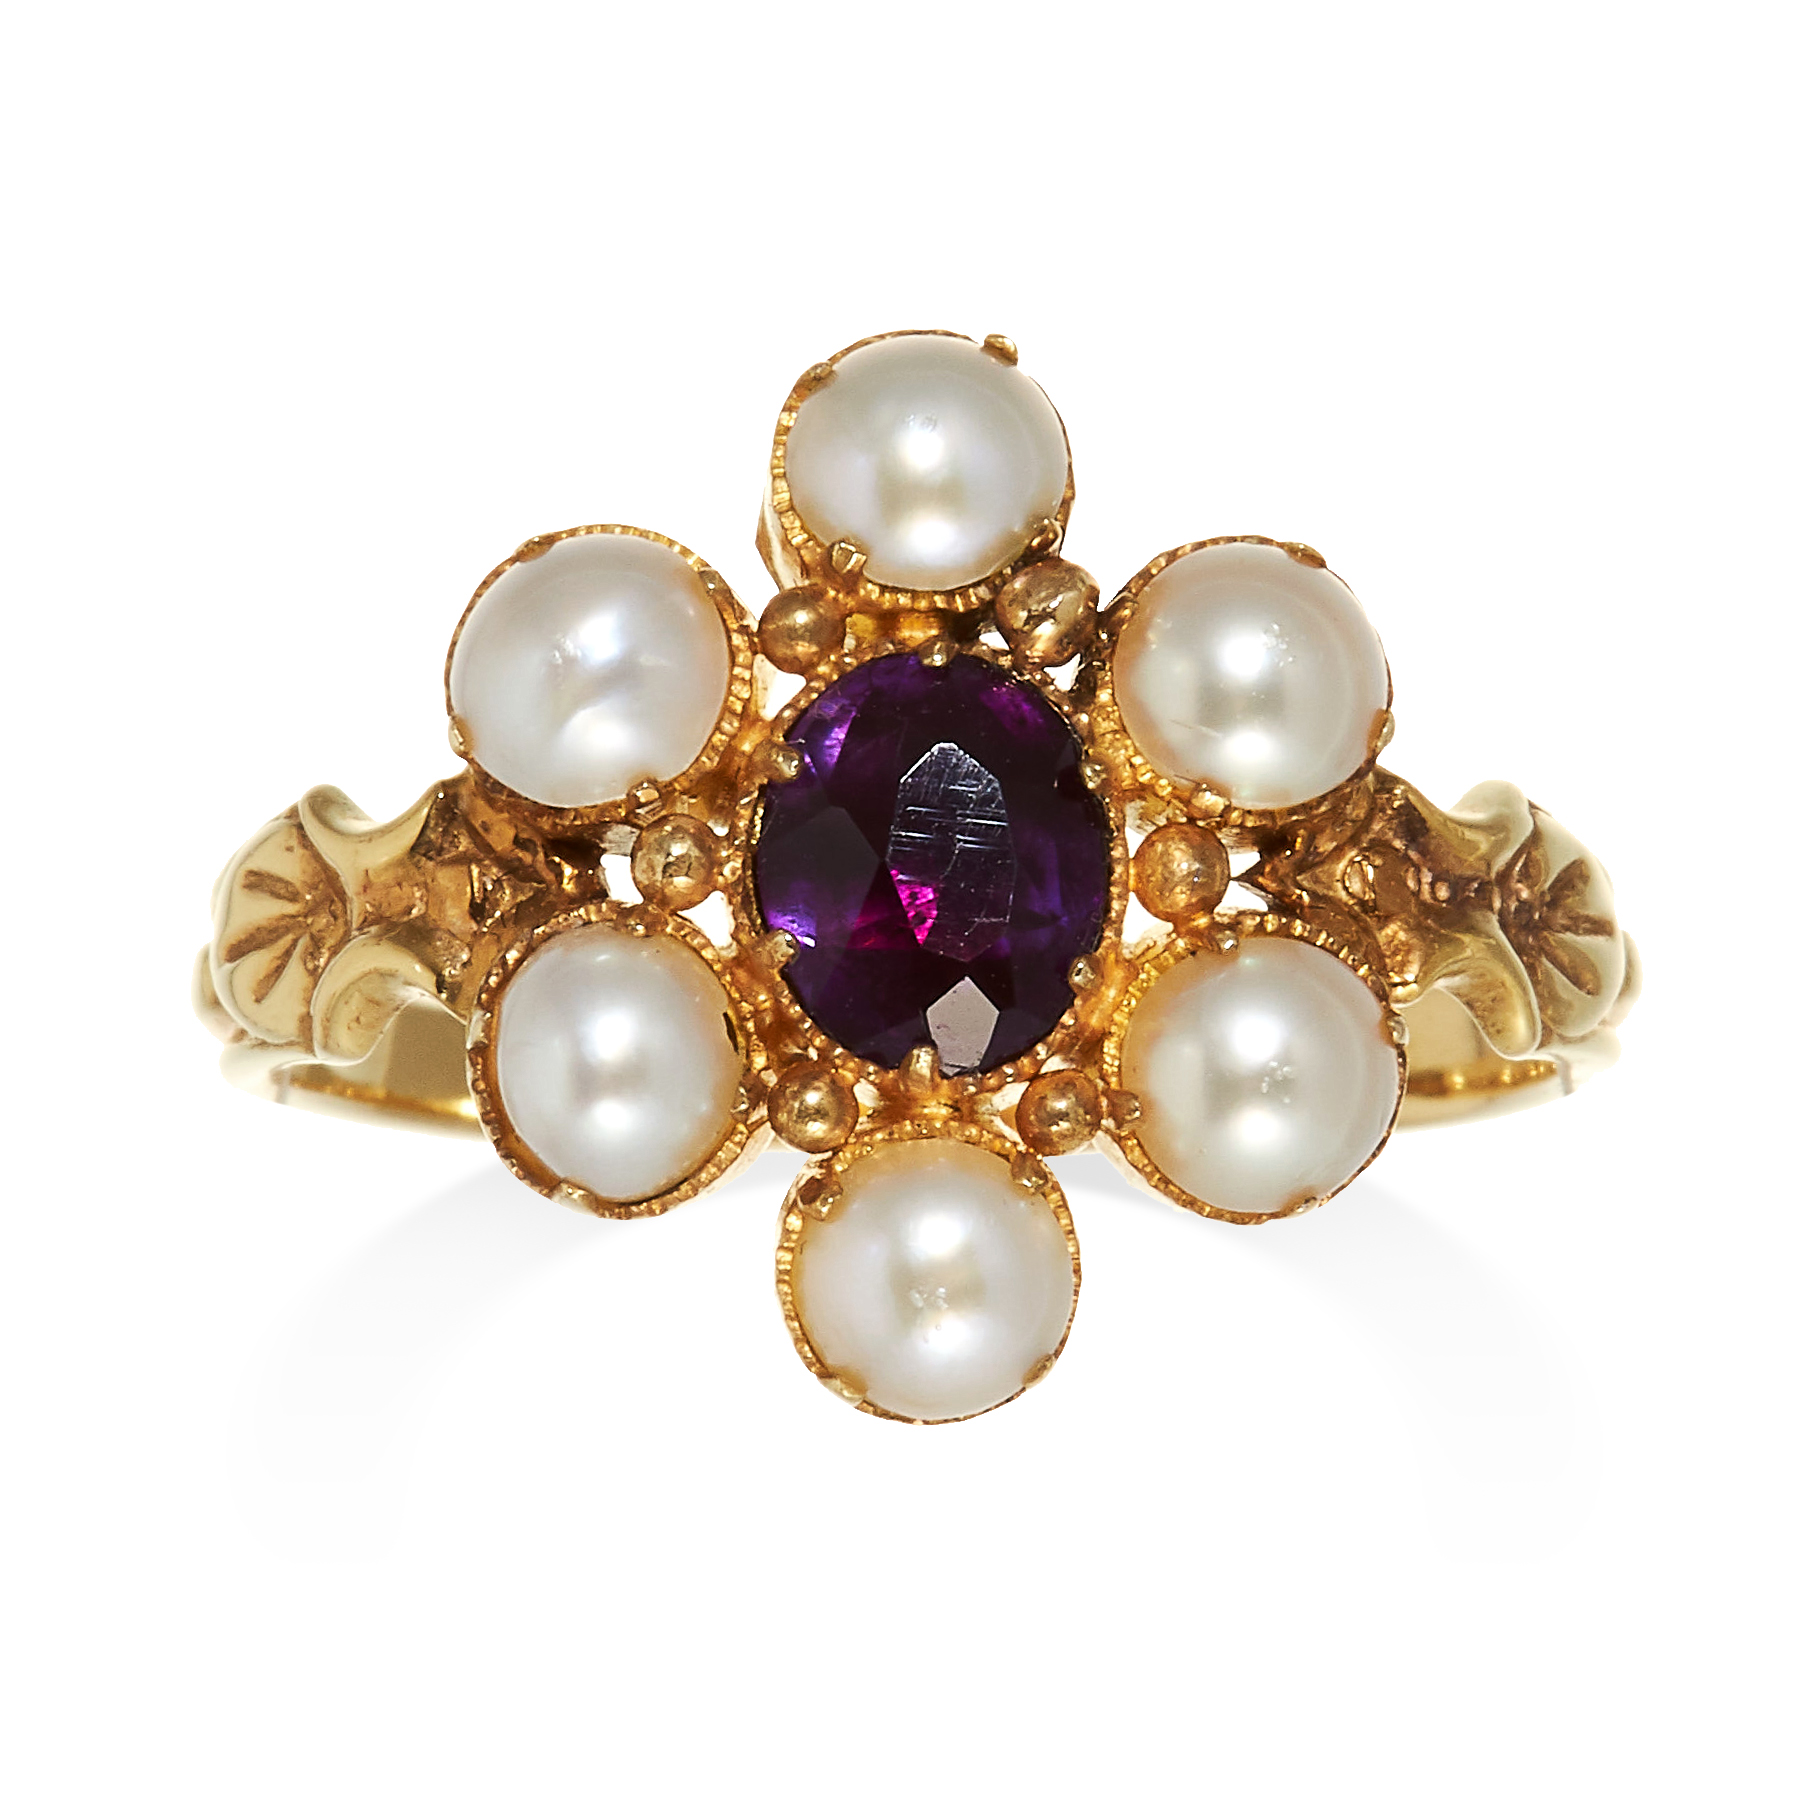 Los 50 - AN ANTIQUE AMETHYST AND PEARL CLUSTER RING in high carat yellow gold, set with an oval cut